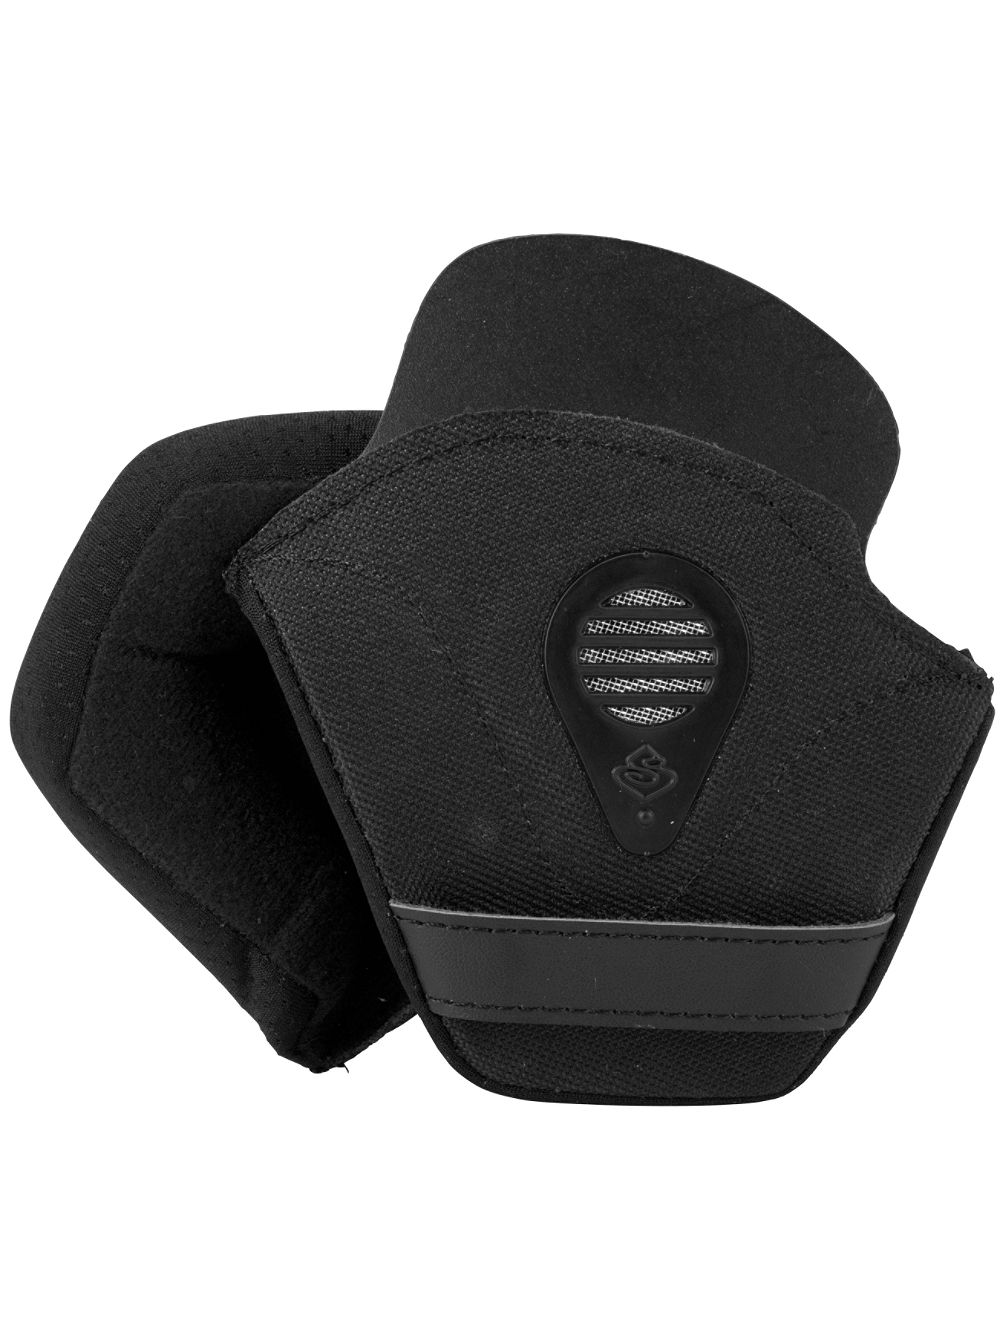 rooster-earpads